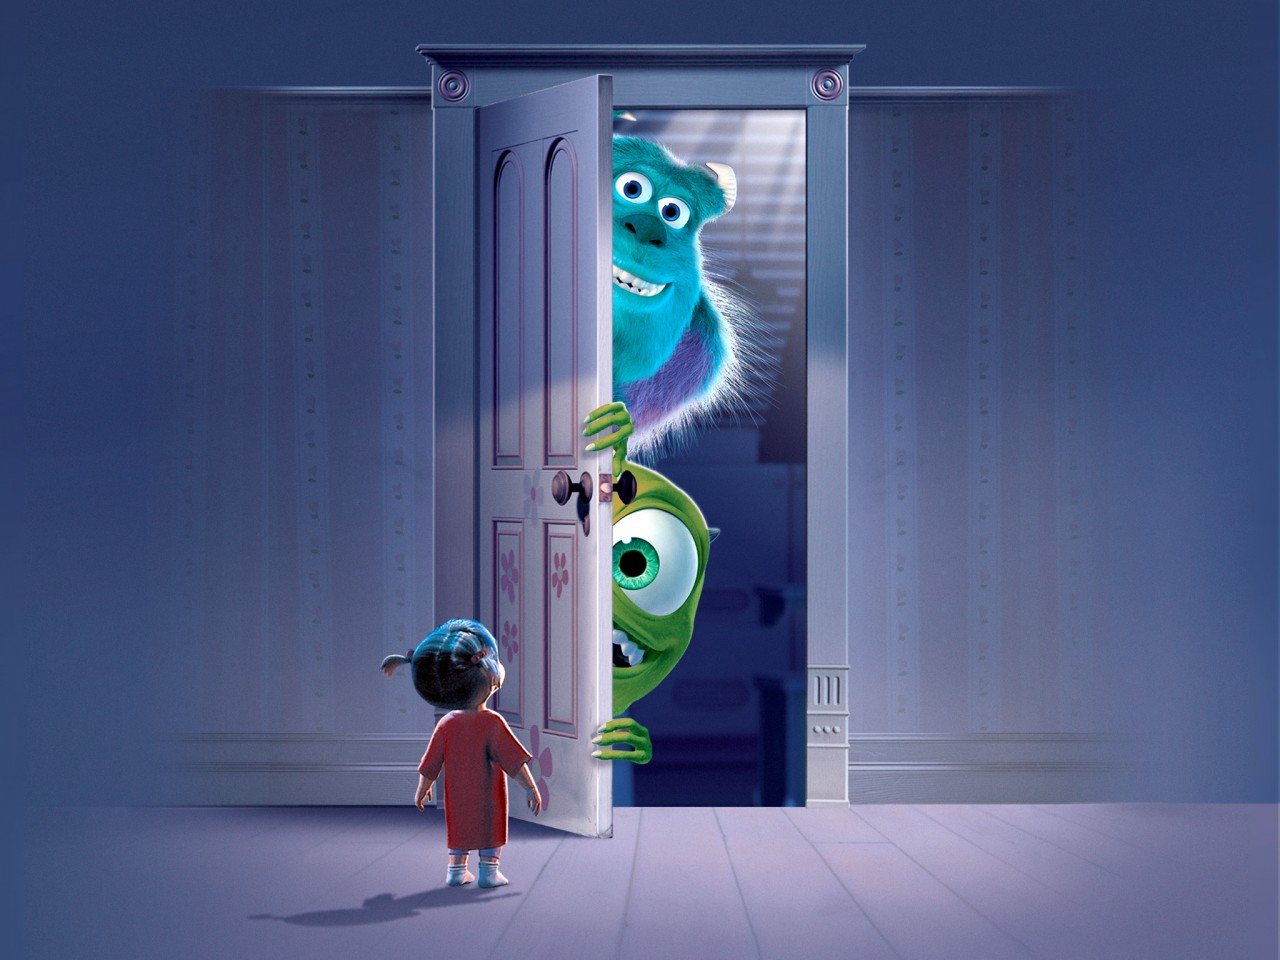 Iphone Book Wallpaper Monsters Inc Movie Wallpapers Hd Wallpapers Id 13795